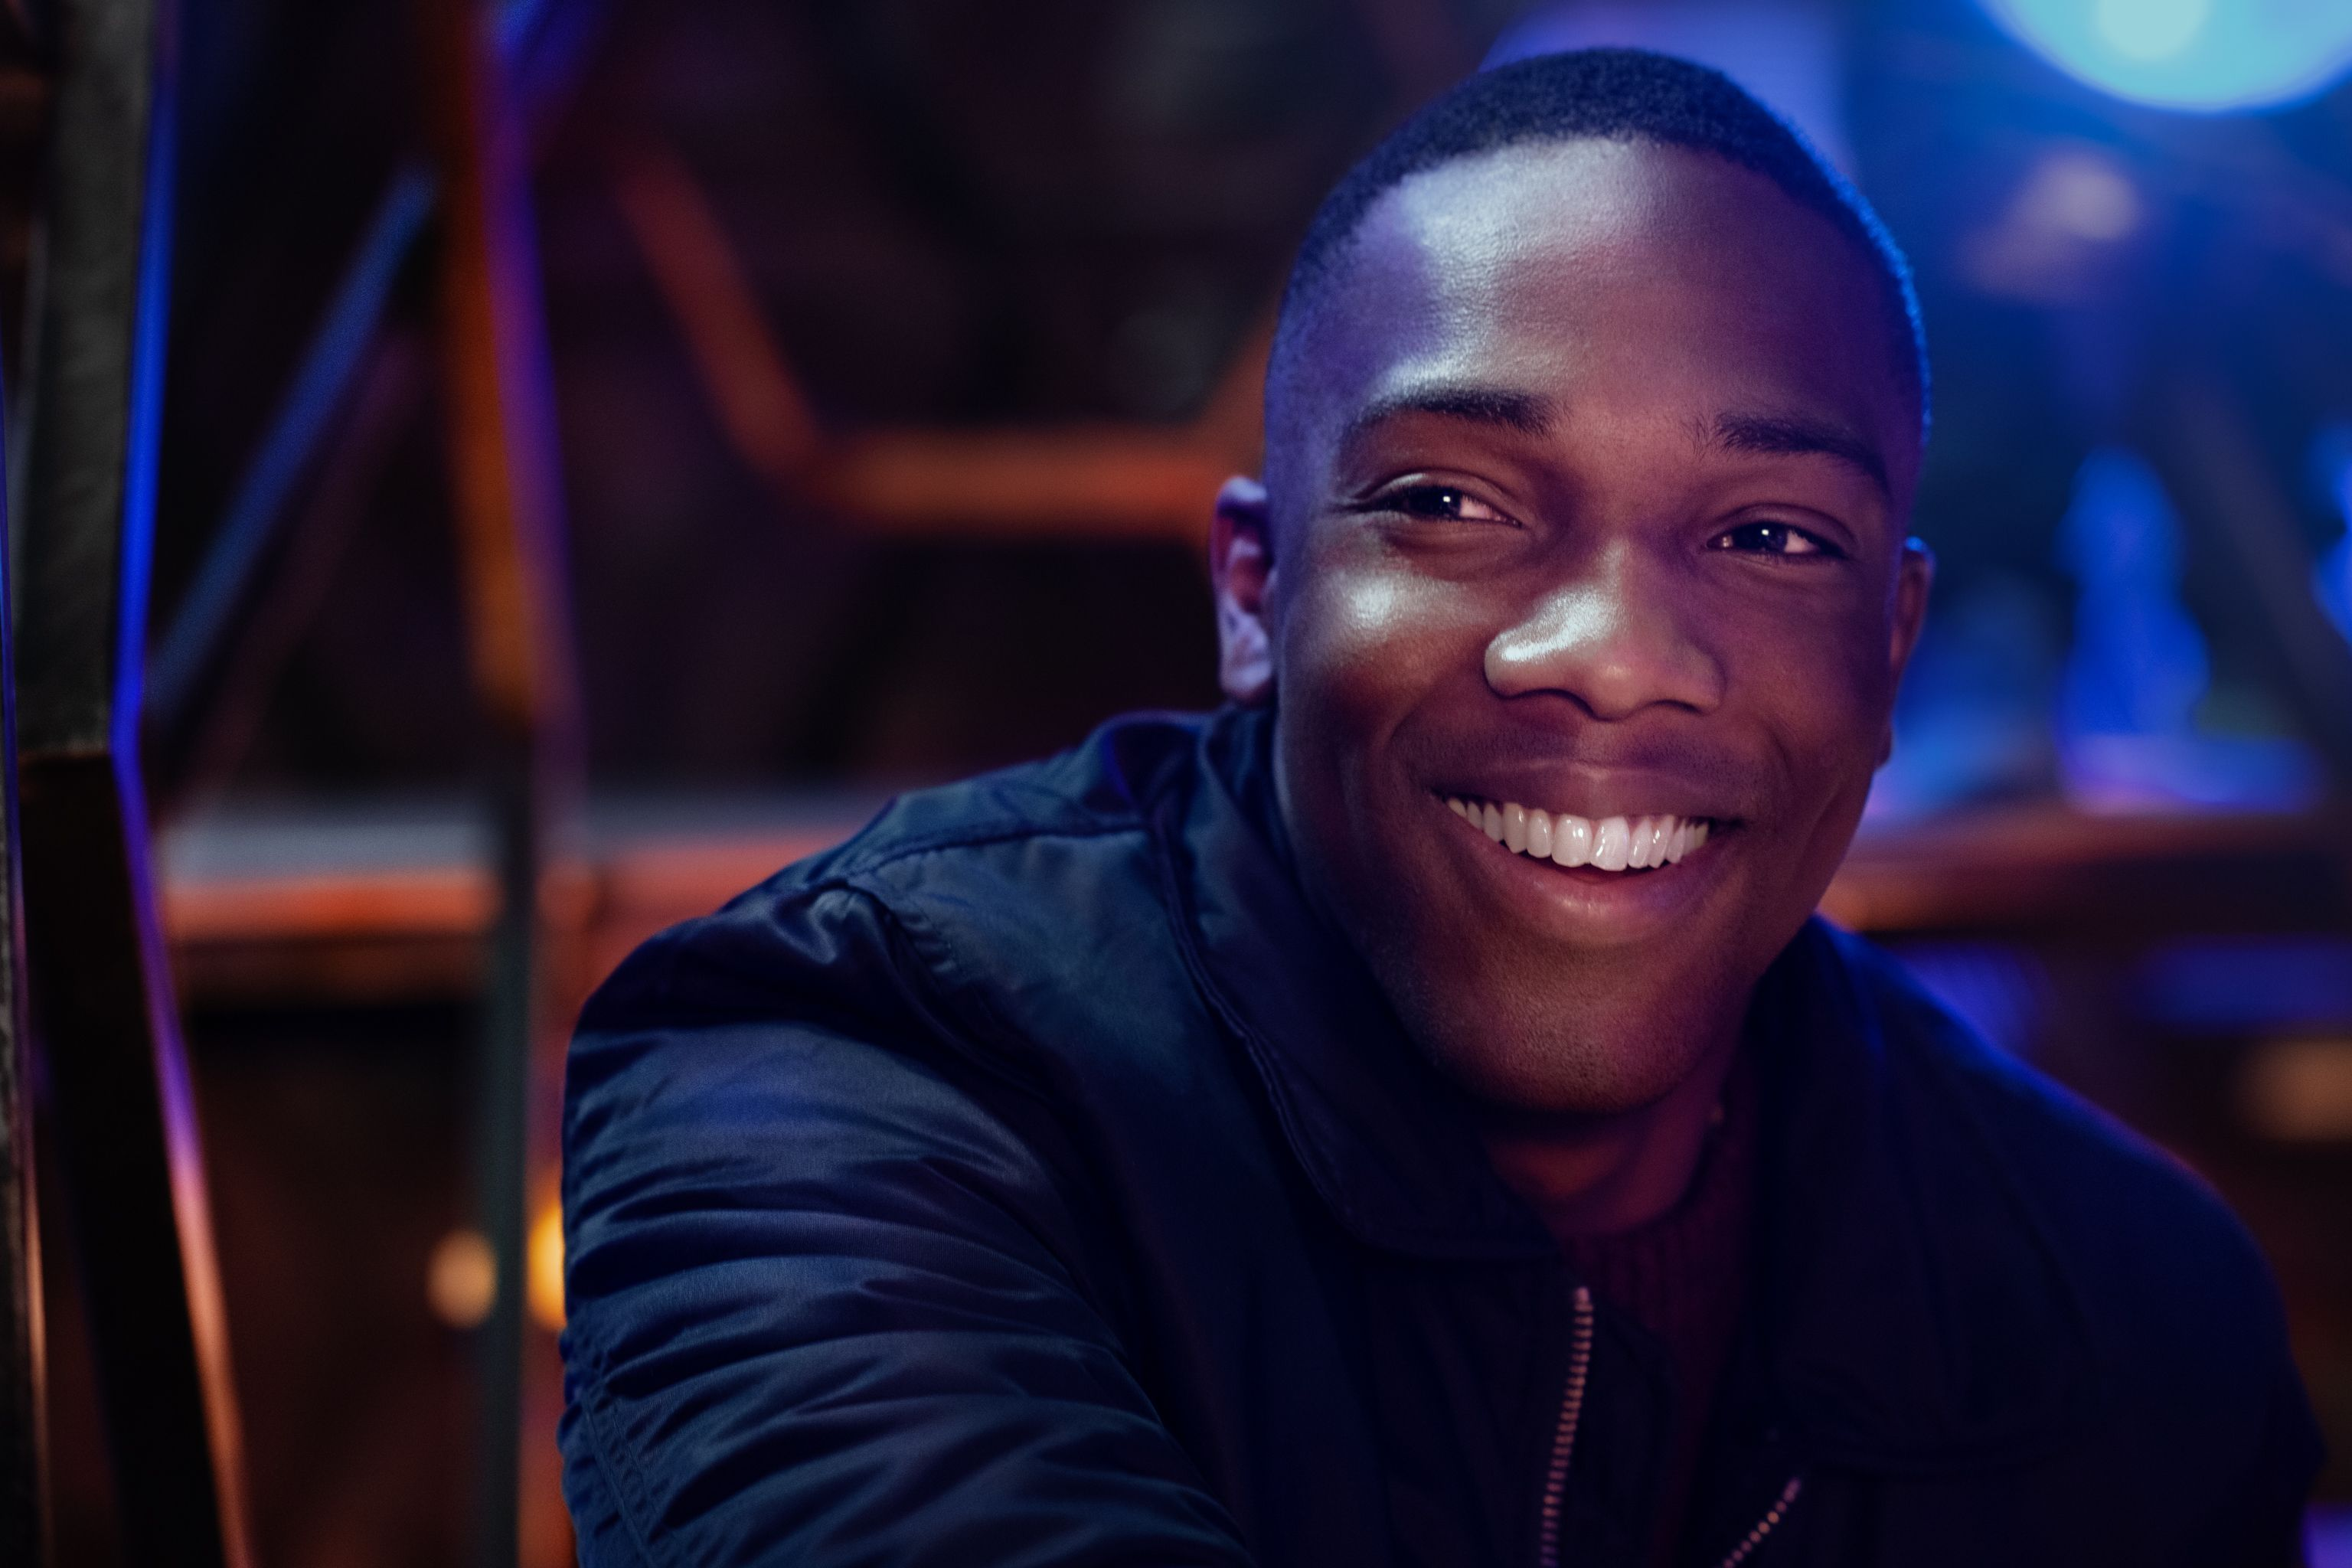 Doctor Who star Tosin Cole's new TV role announced